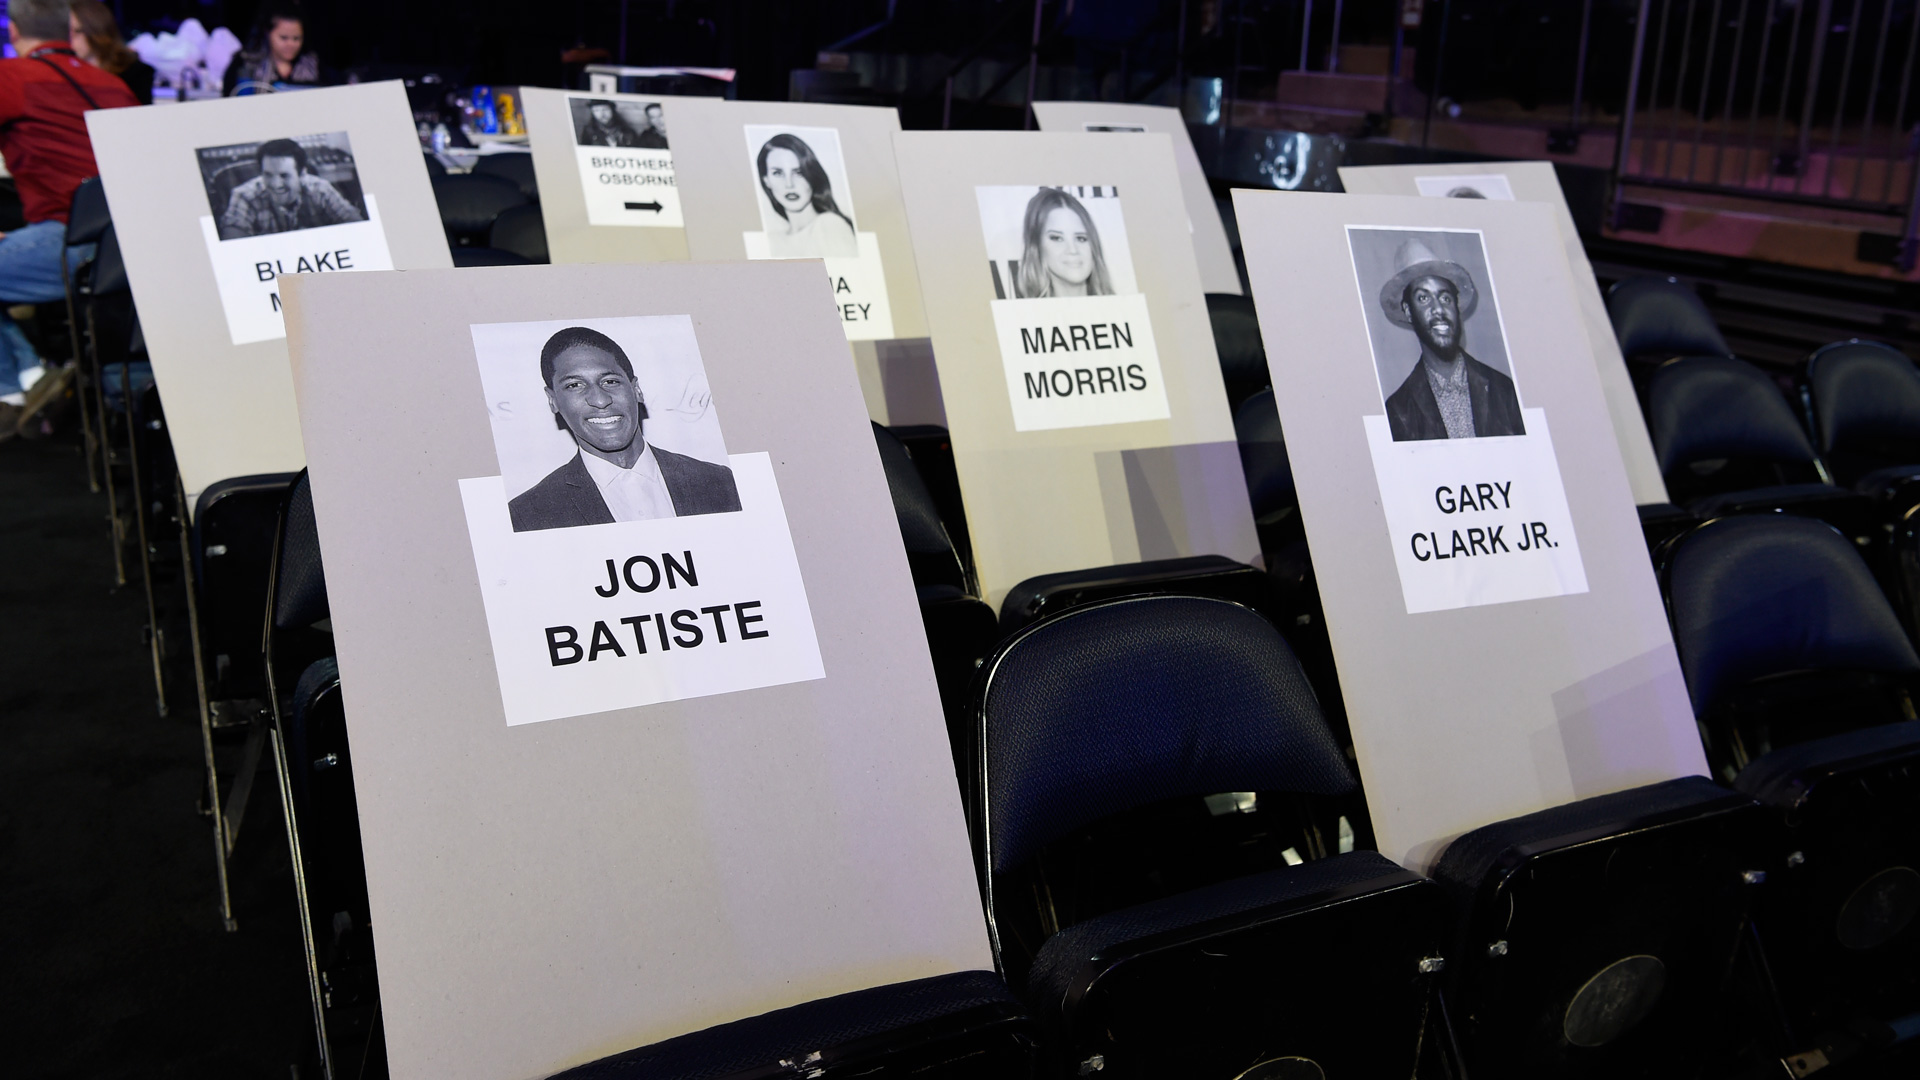 2018 GRAMMY Awards performer and The Late Show bandleader Jon Batiste will be watching the ceremony next to Gary Clark Jr.